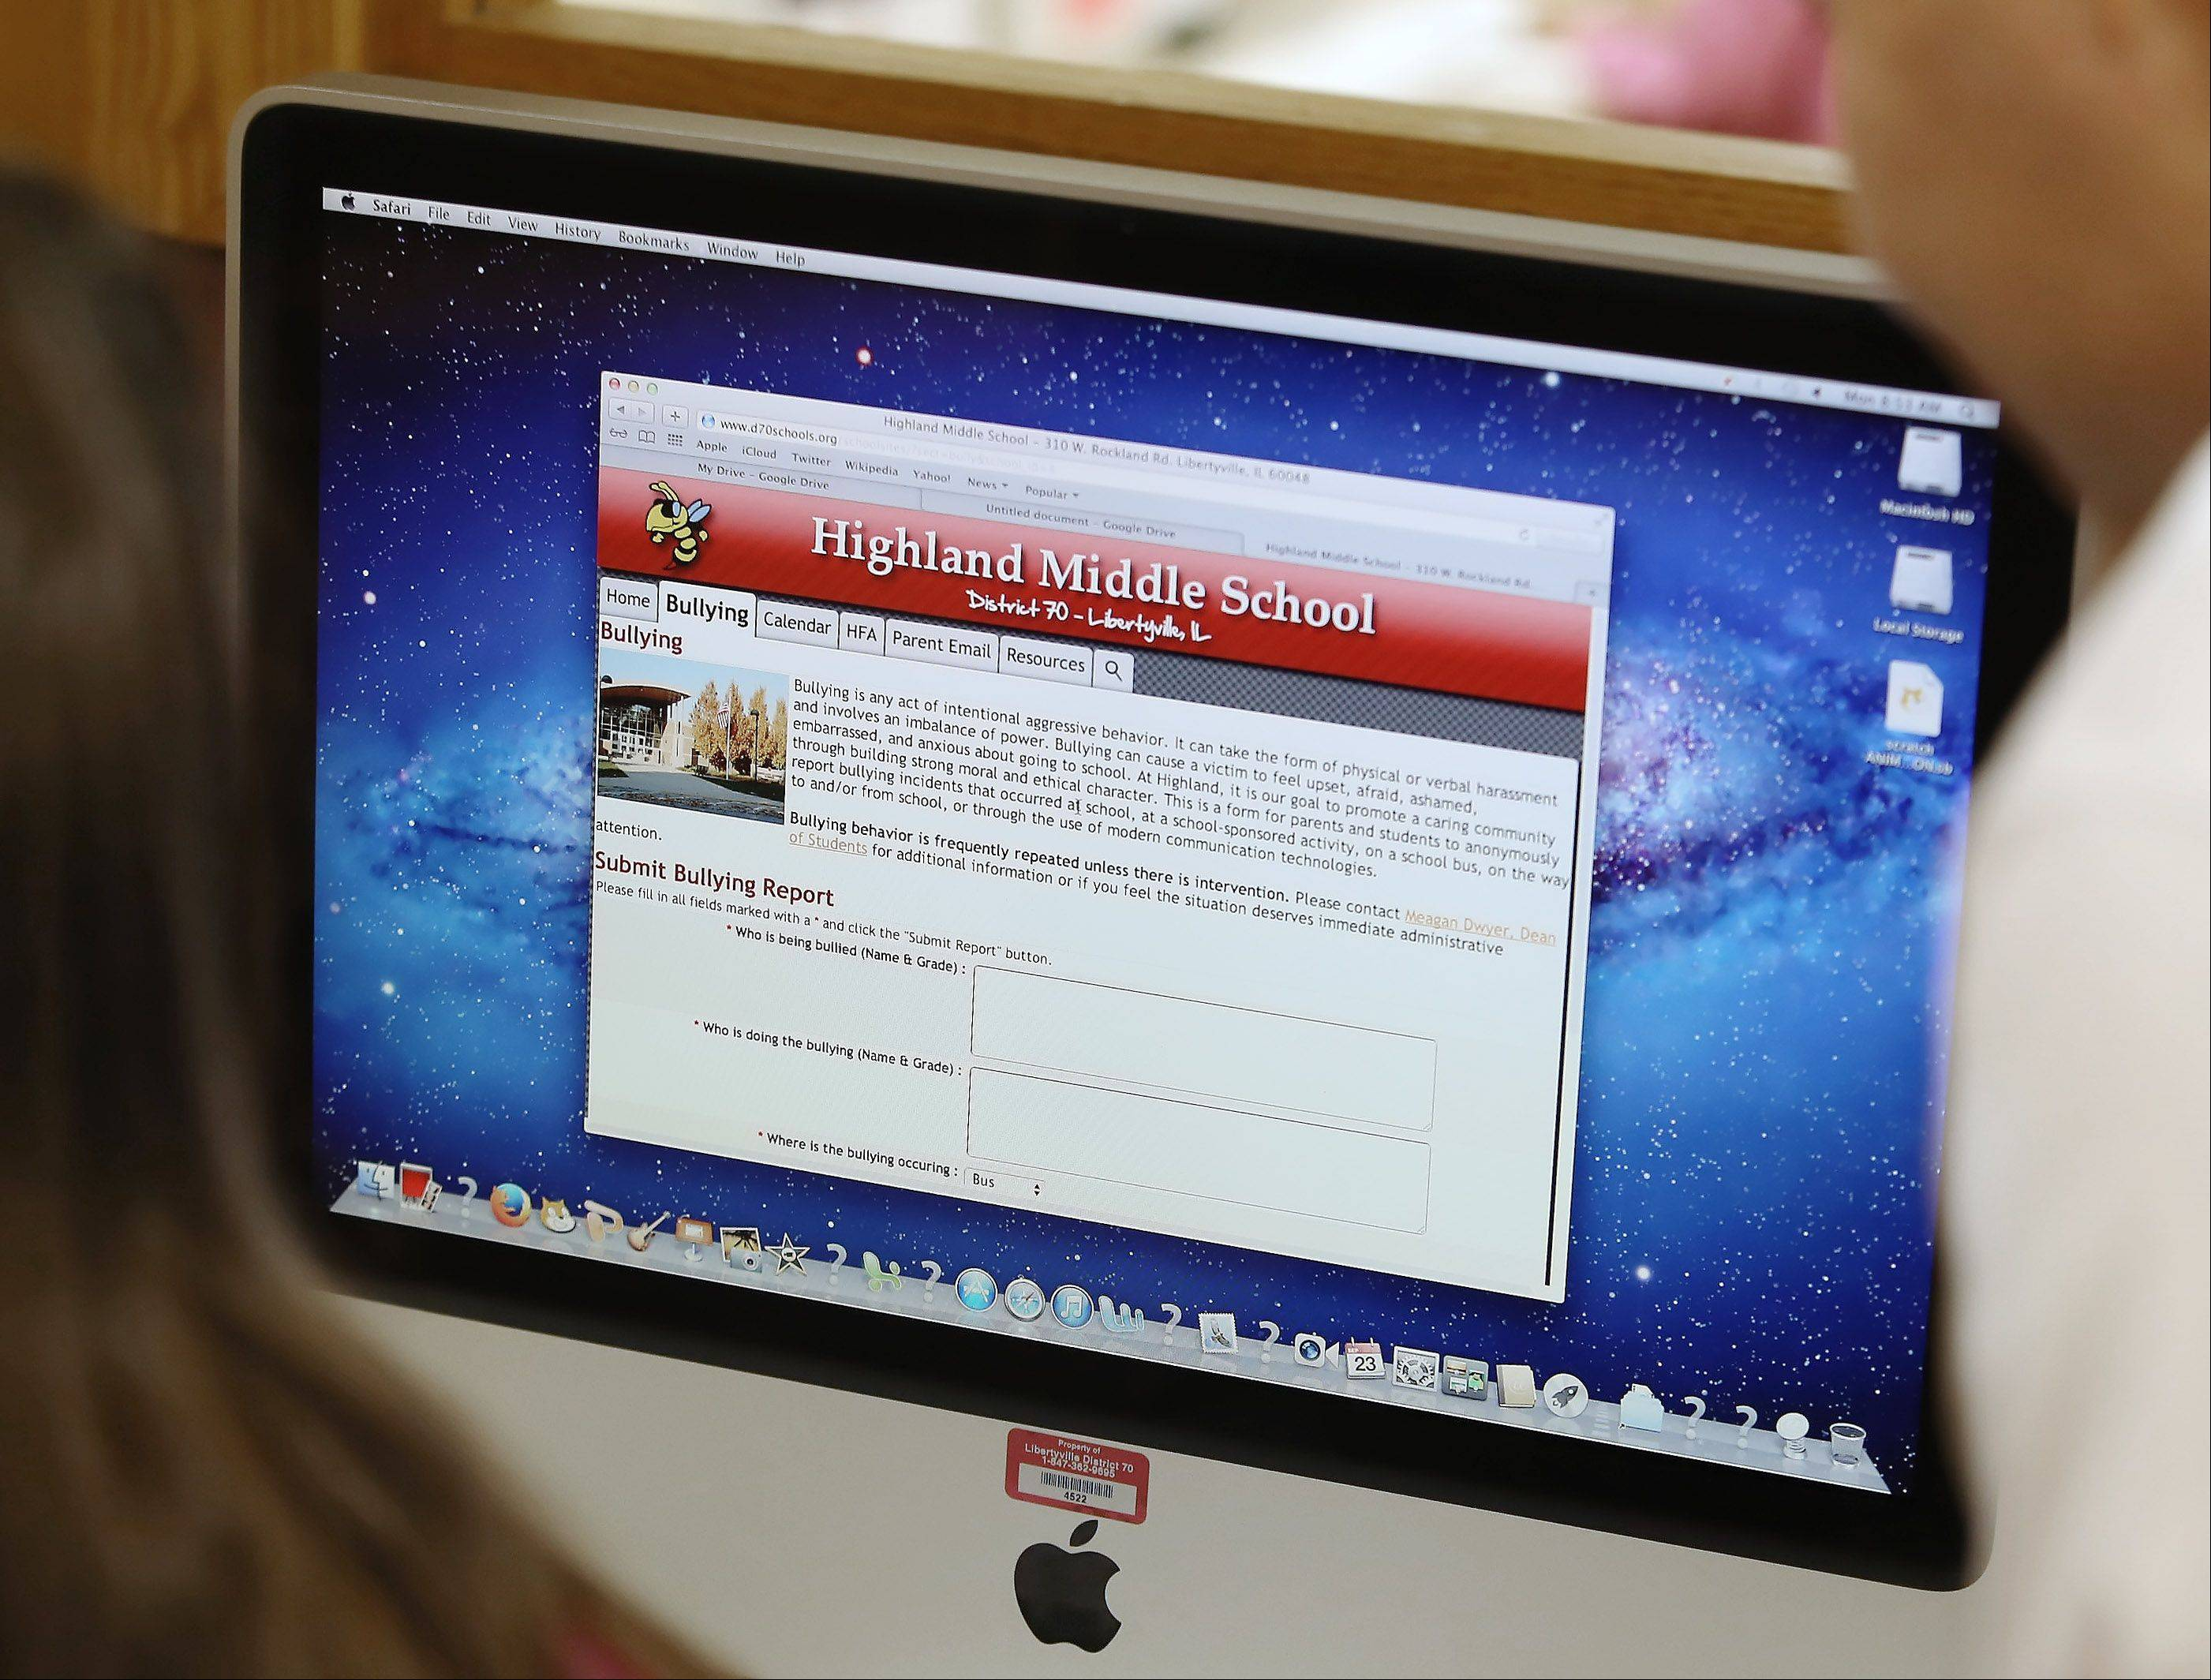 The new online bullying forms at Highland Middle School in Libertyville. Online forms allow students and parents to report bullying to school officials and have helped some school districts deal with a problem that has been in the national spotlight.